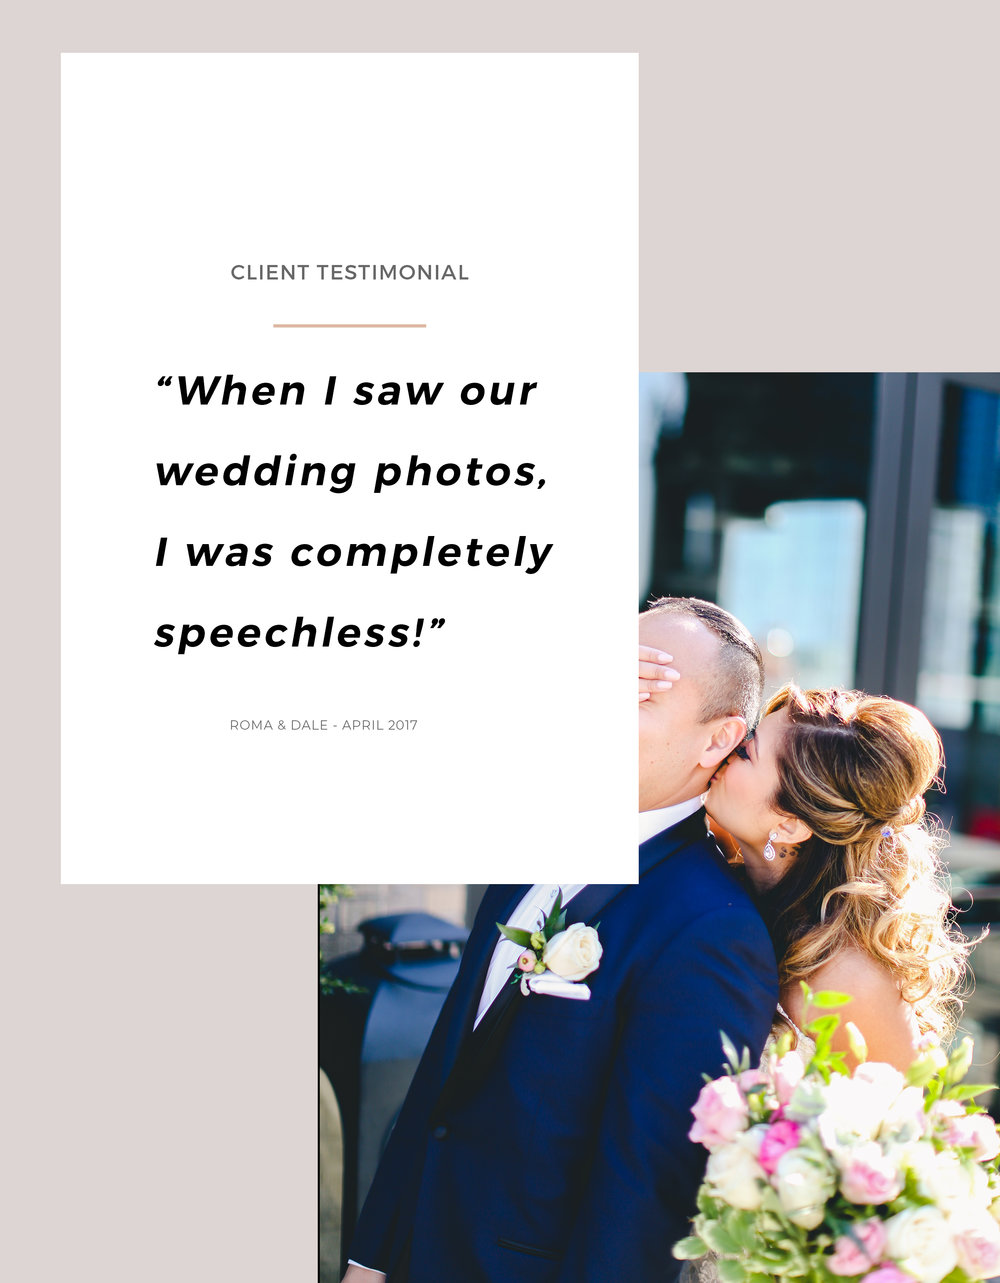 Wedding-Photography-Guidebook-Second-Edit_0001_Pg 2 - Client Testimonial.jpg